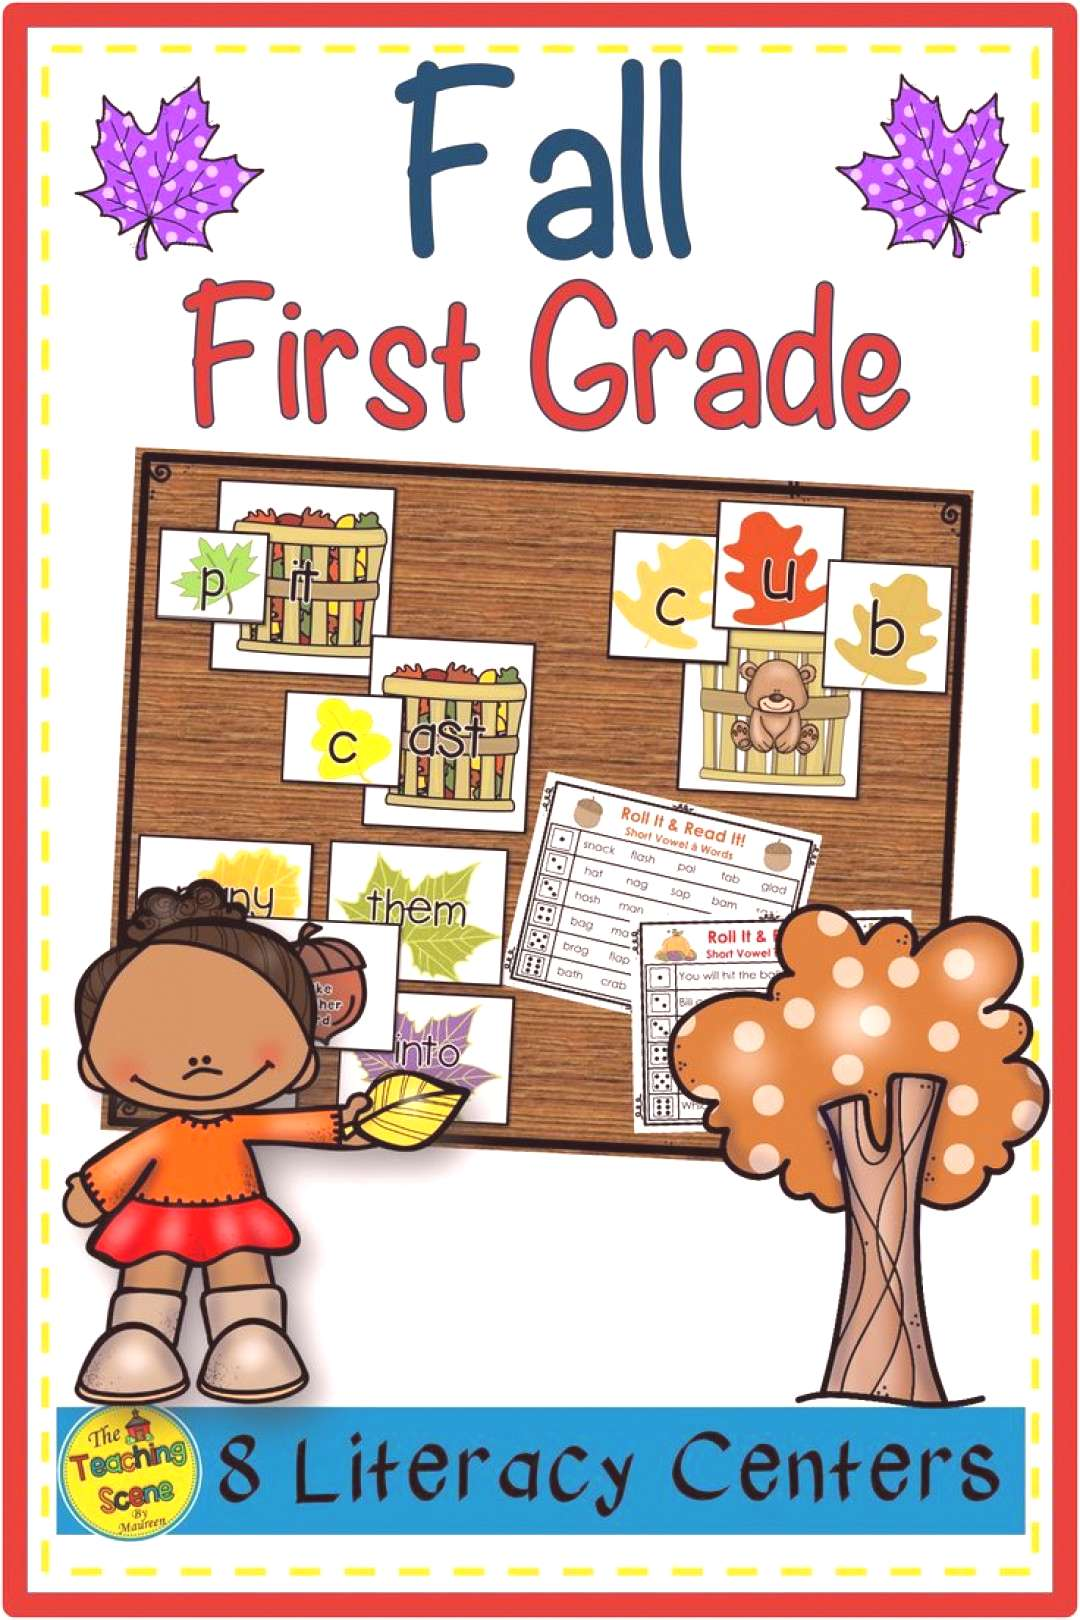 The Teaching Scene by Maureen (mmonroe59) on Pinterest Do you need some Fall-themed literacy center